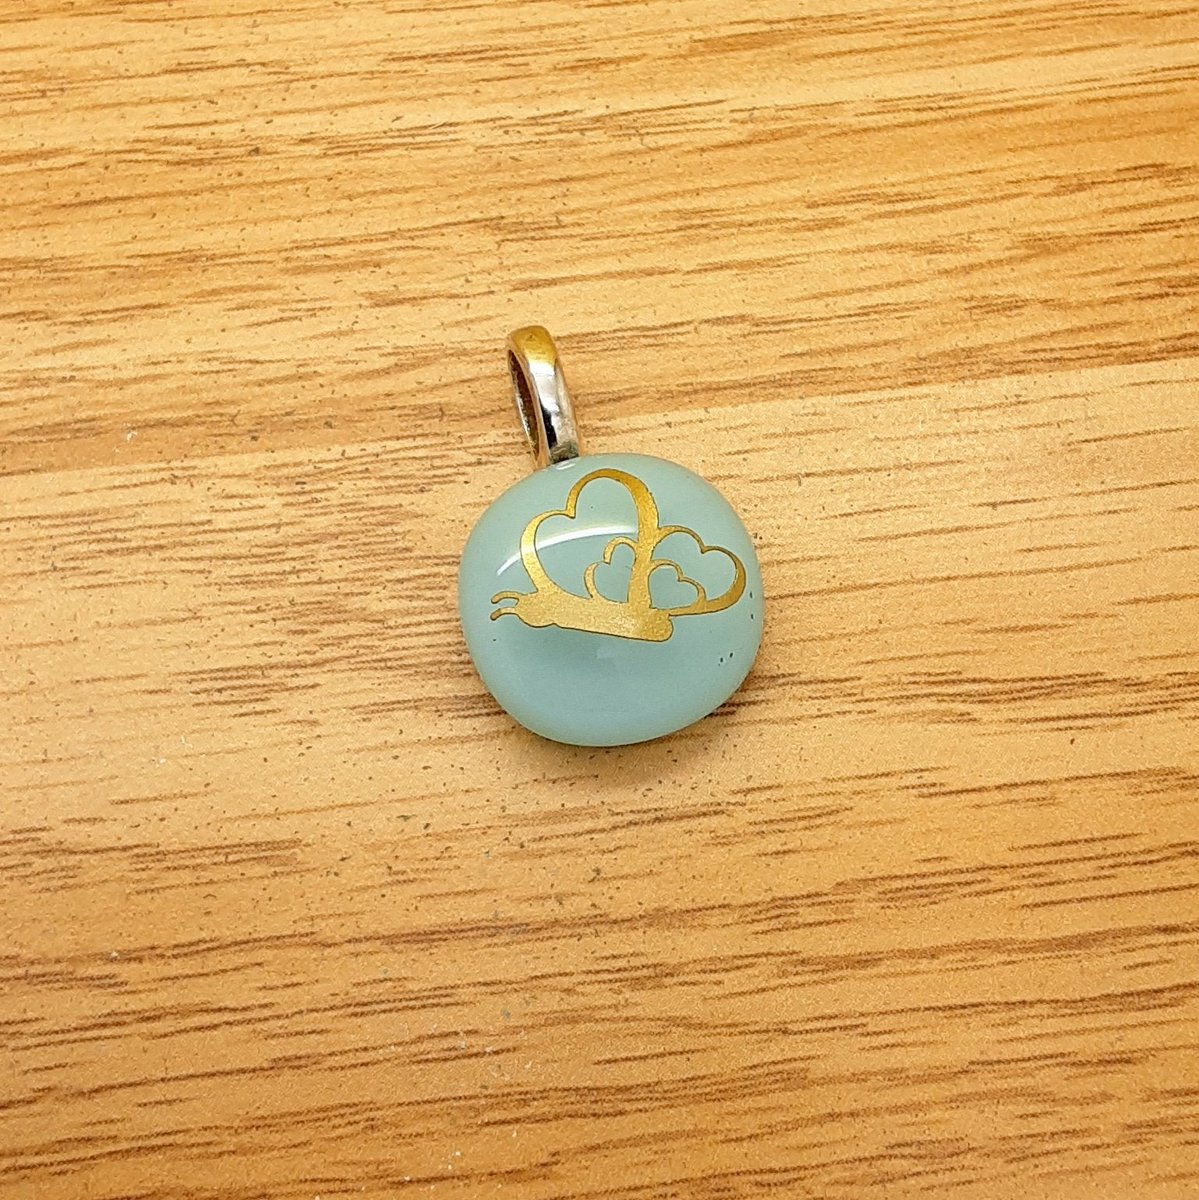 A lovely new petite #handmade glass pendant  with gold heart butterfly design.